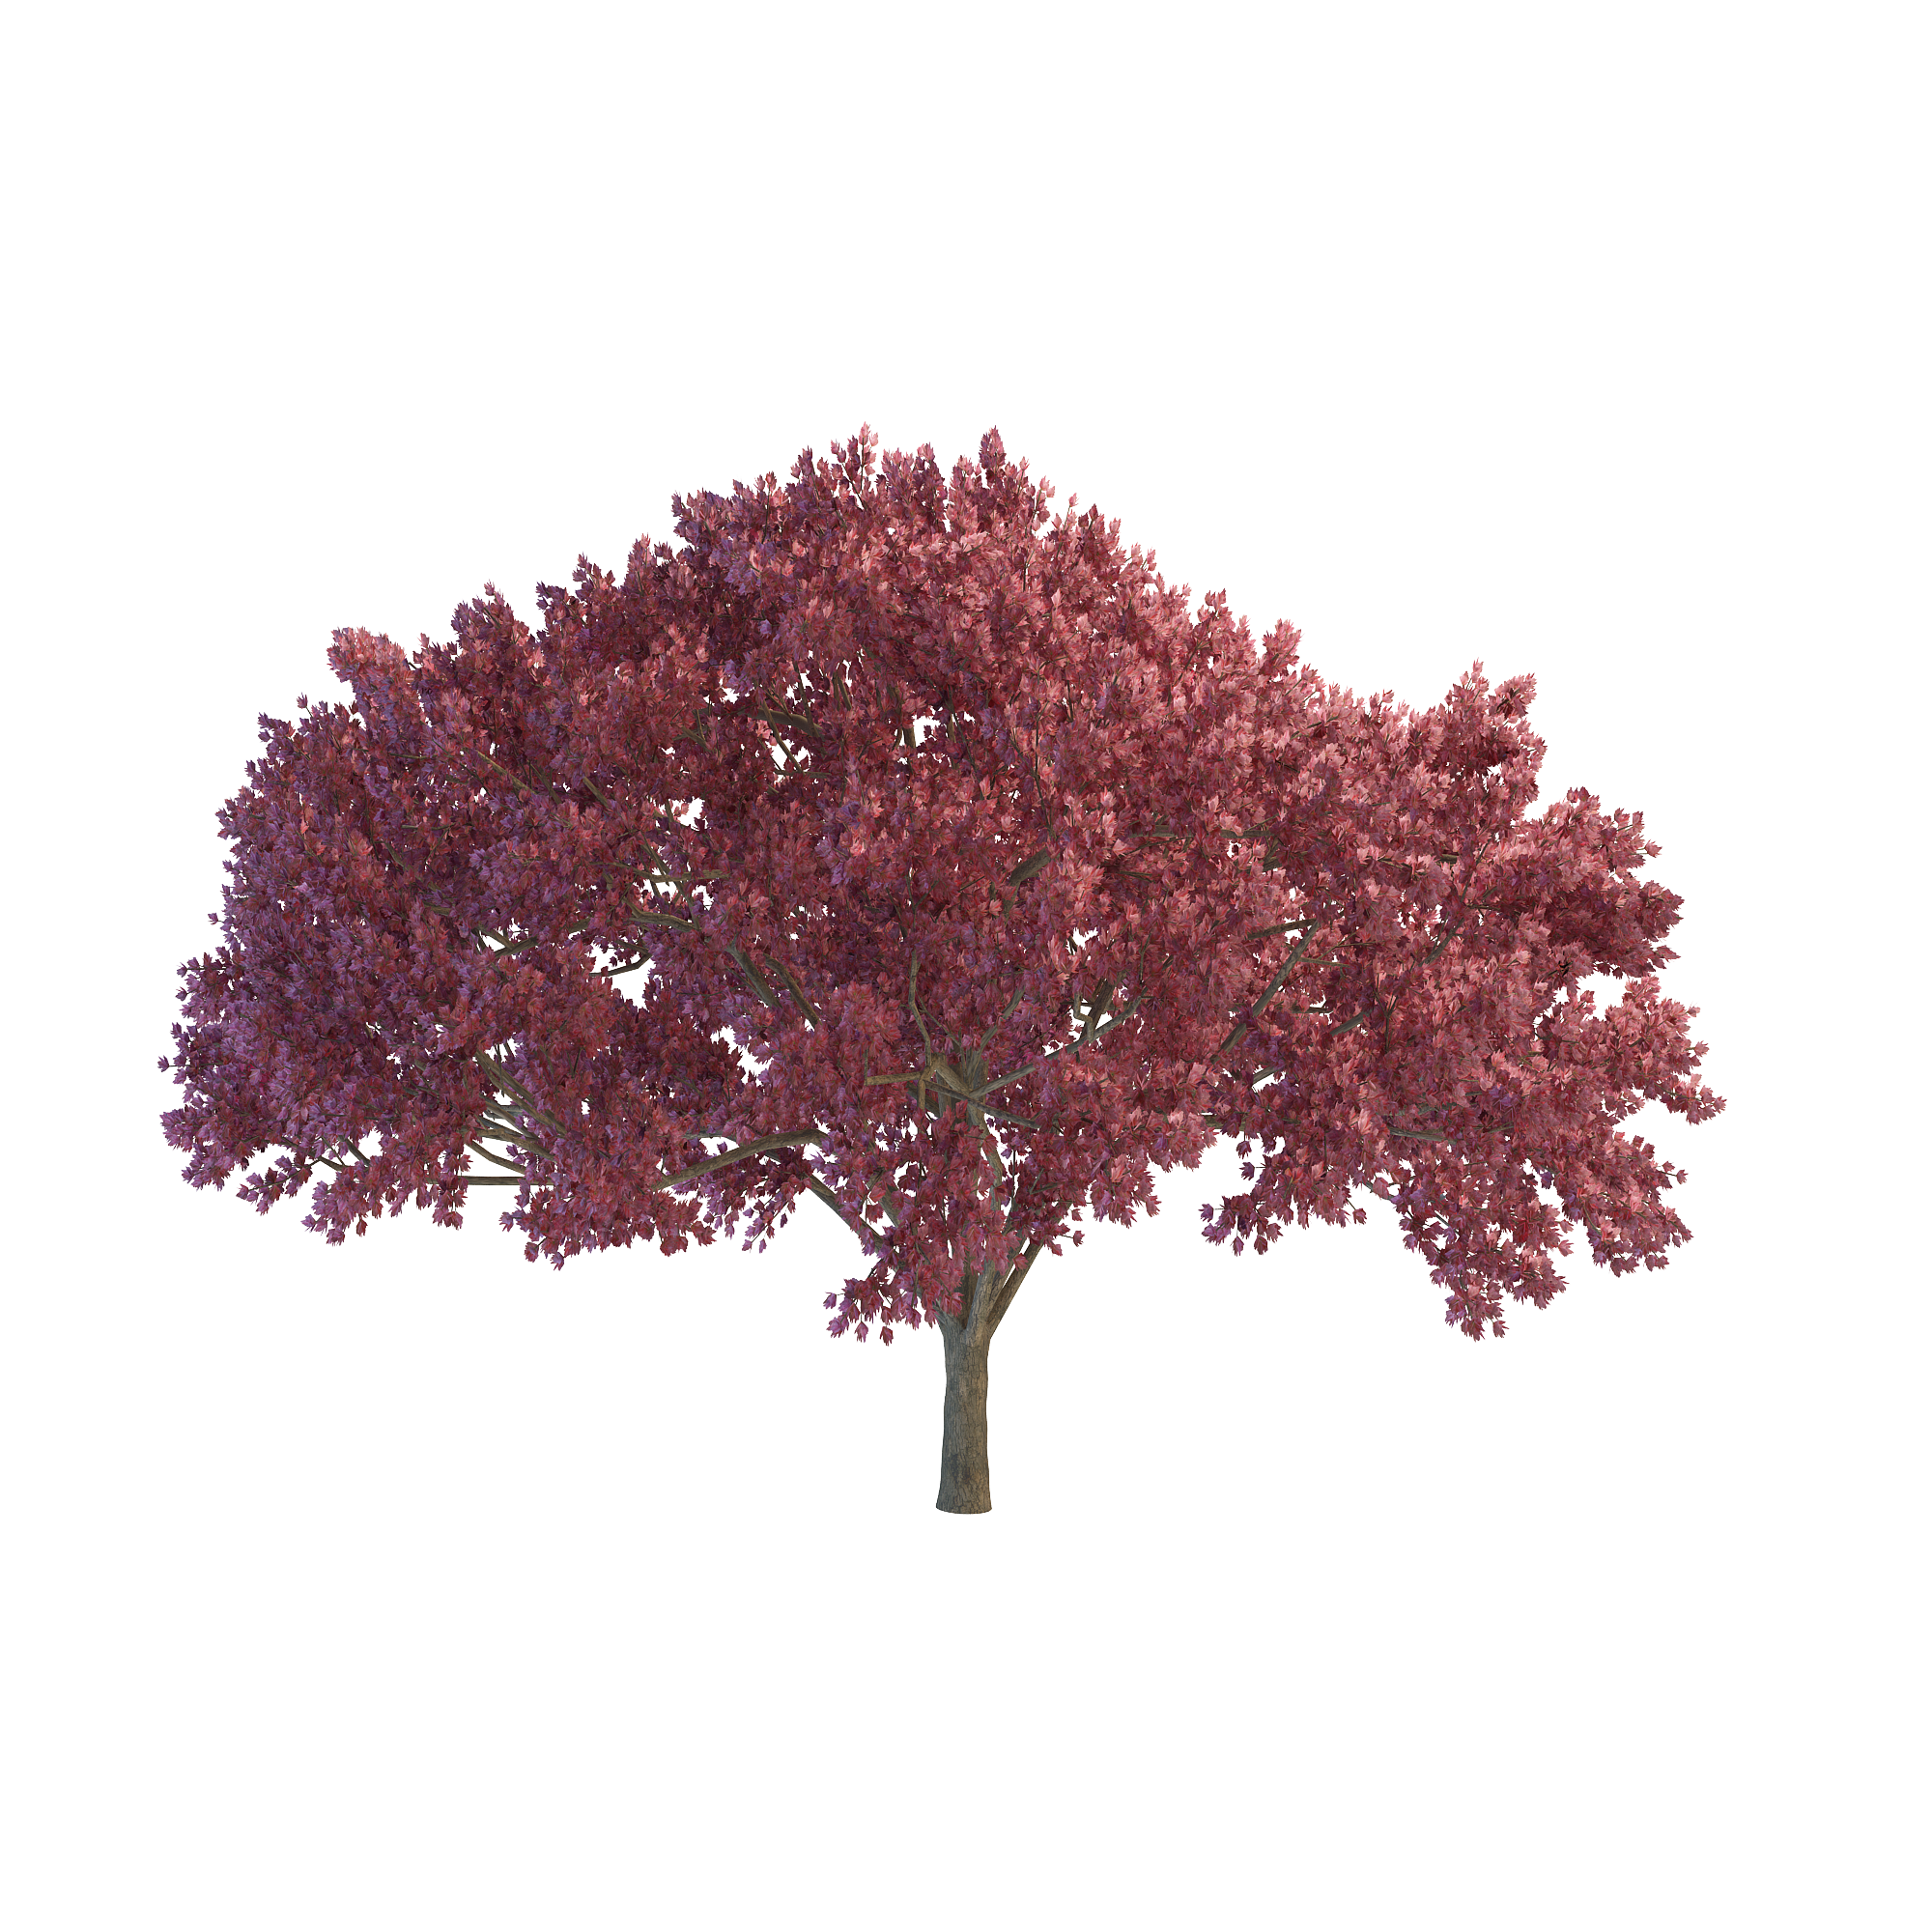 Cherry Tree File PNG Image